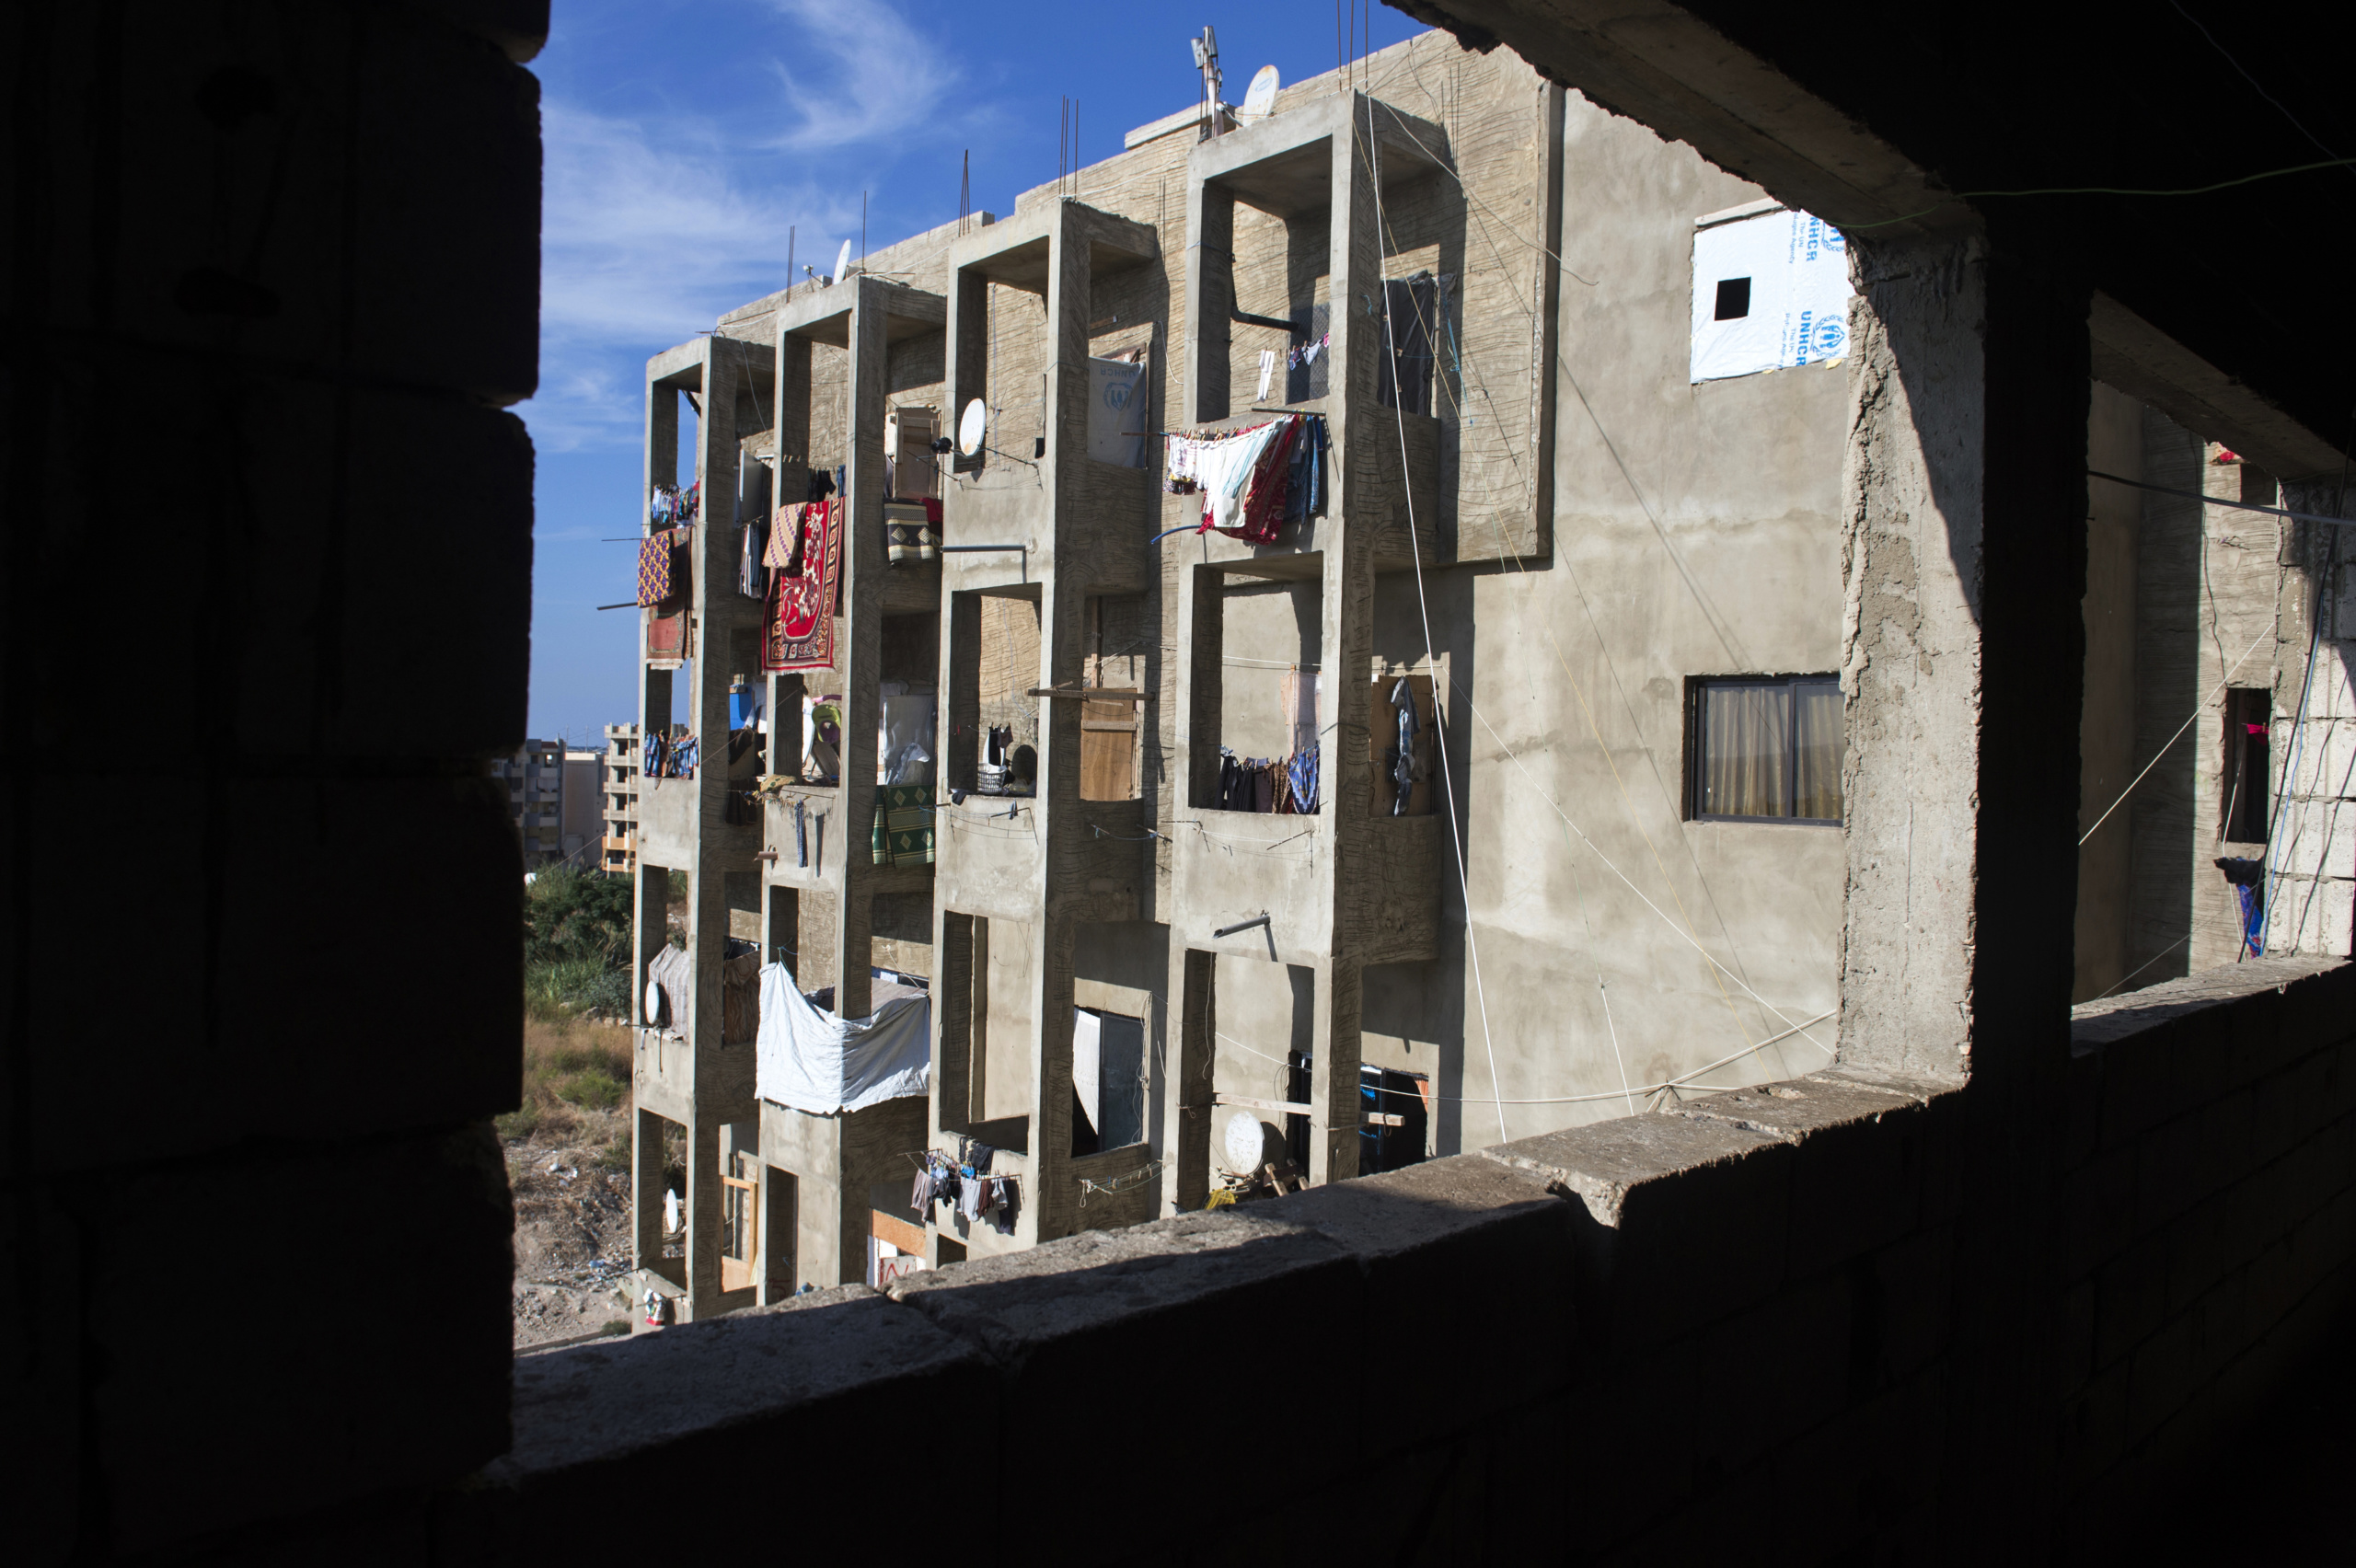 "Saida-Lebanon. An abandoned construction site occupied by Syrian refugees. This building, referred to as a ""collective shelter"", is owned by the Islamic University and financed by a Kuwaiti association. About 150 families live within it, all from the Syrian Daraa region. The refugees try to survive through public subsidies and underpaid labor. the Lebanese government will not allow traditional refugee camps in Lebanon, refugees are finding unusual places to live across the country, including unfinished homes, abandoned shopping malls and schools ……."